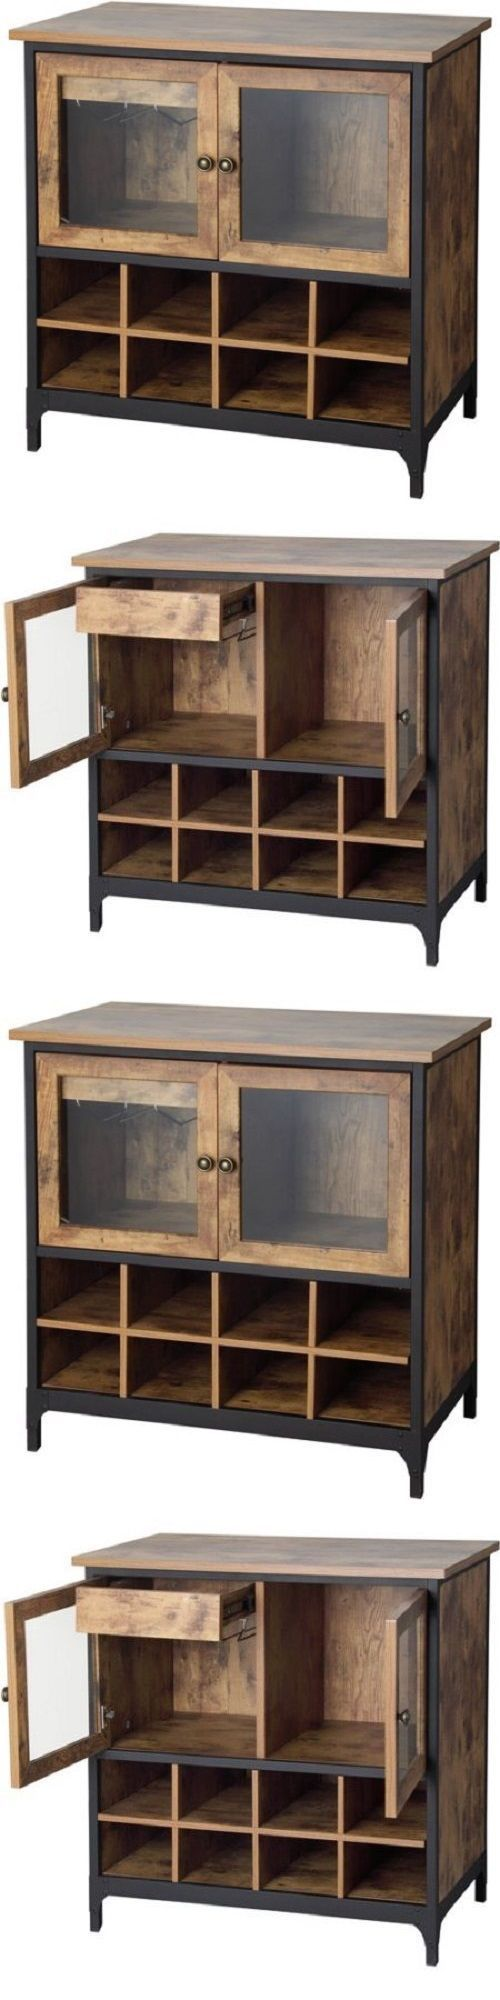 Sideboards and Buffets 183322: Sideboard With Wine Rack Buffet Table Rustic Dry Bar Furniture Cabinet Storage -> BUY IT NOW ONLY: $139.99 on eBay!